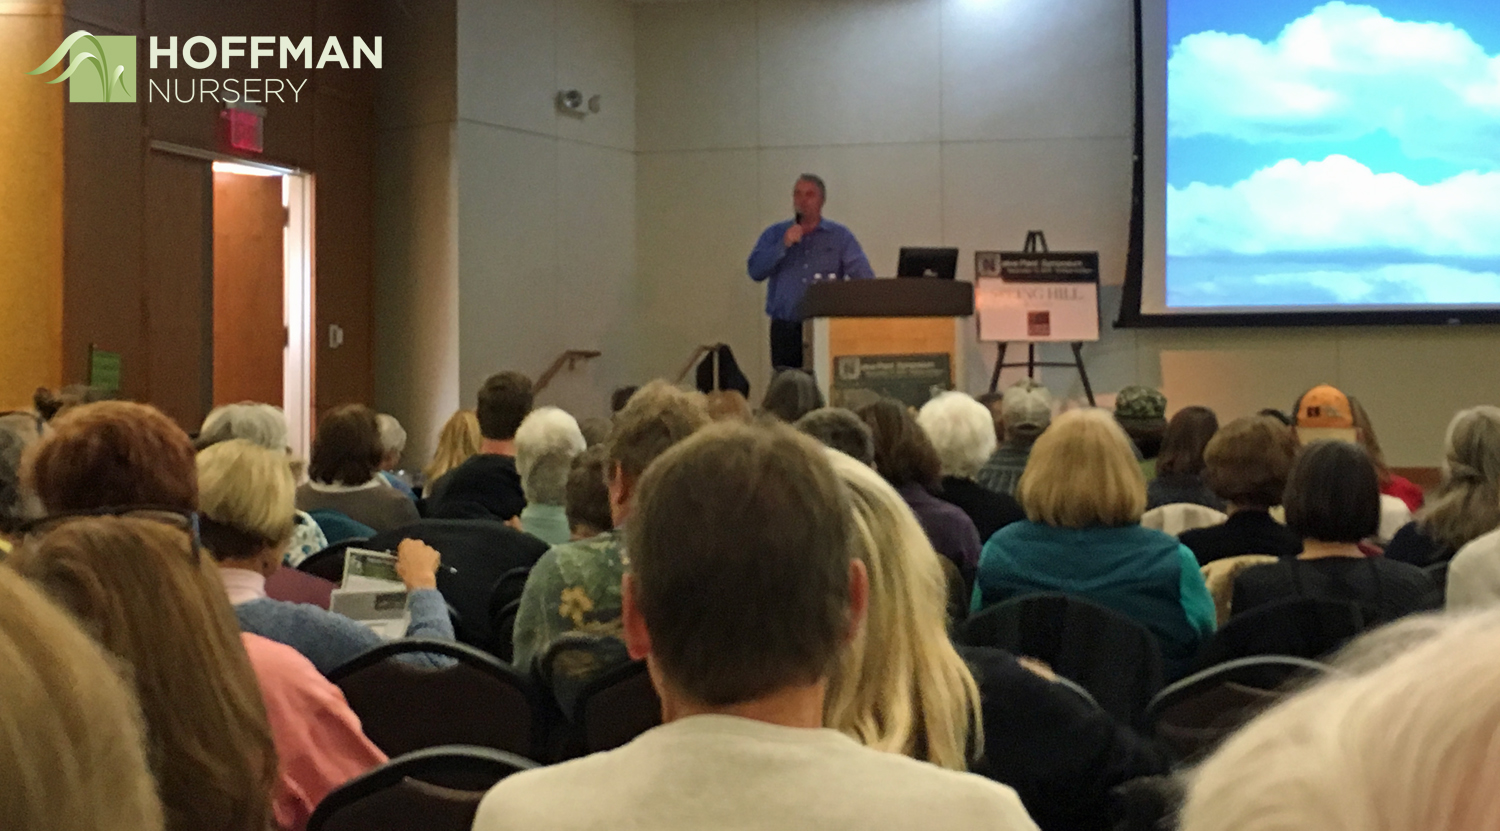 Scott Beuerlein from the zoo hosted the symposium activities. It was a sell-out crowd, with more than 280 participants.